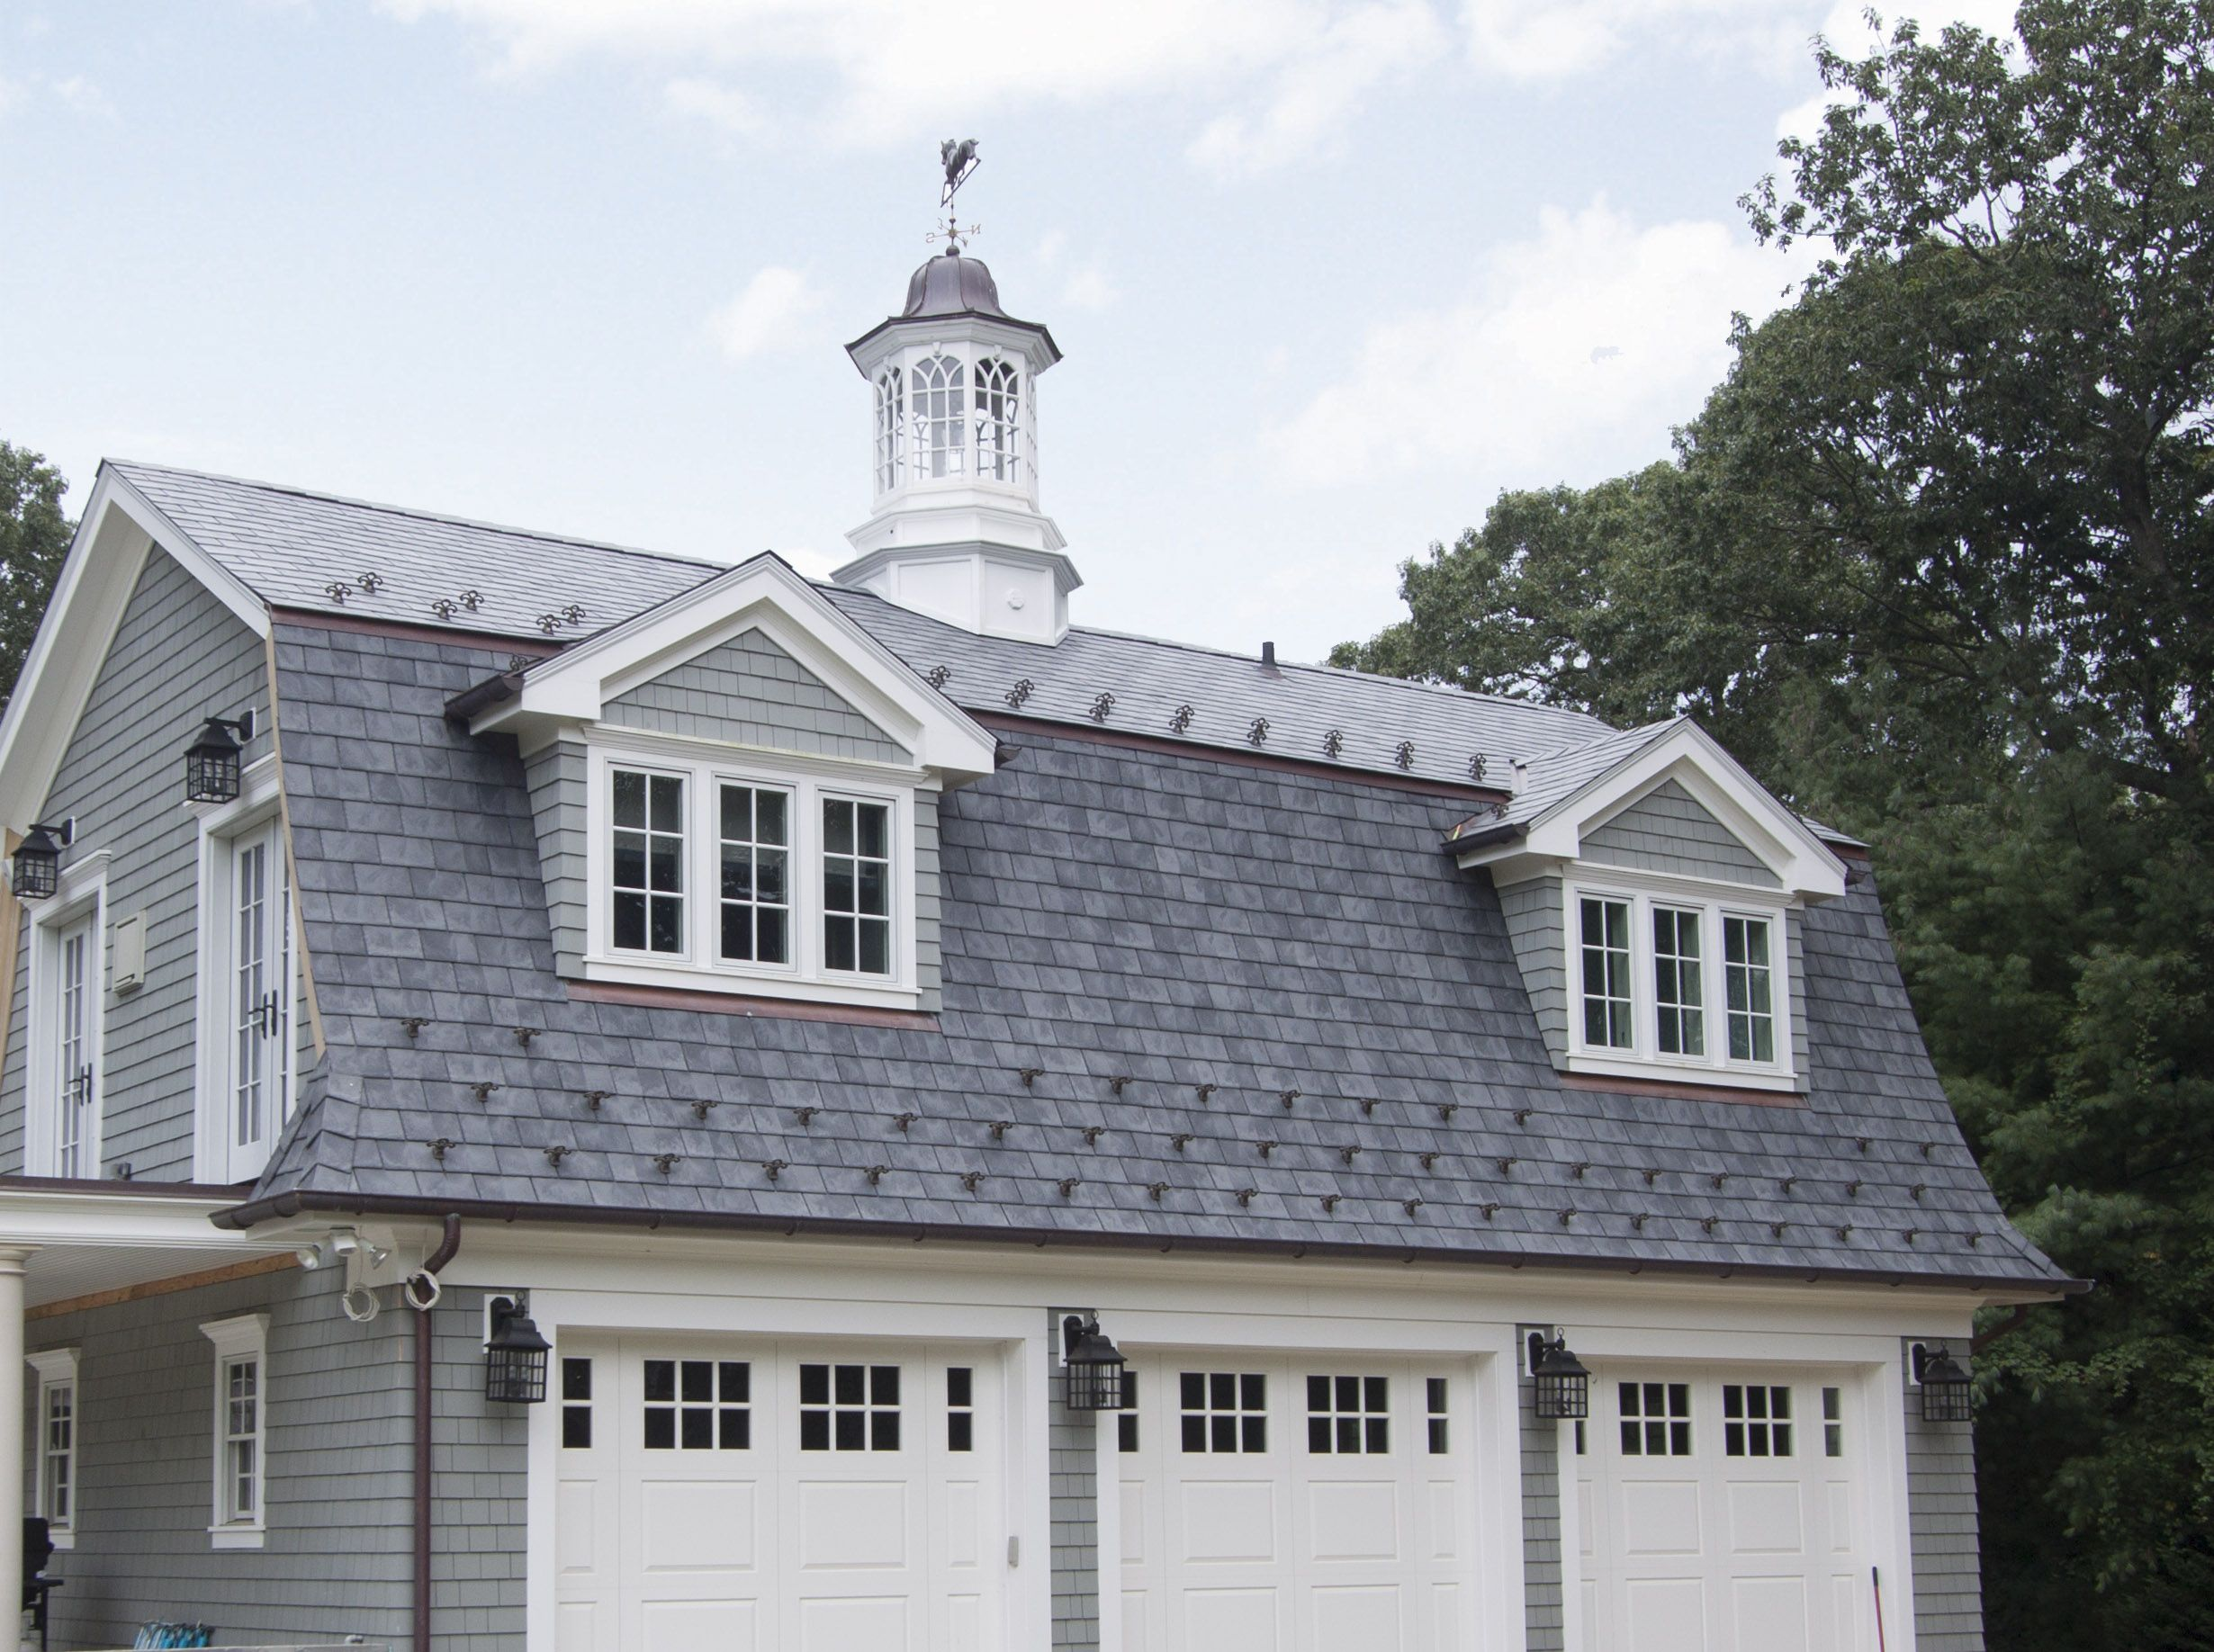 Synthetic Slate Plastic Roofing Mansard Roof Roofing Systems Roofing